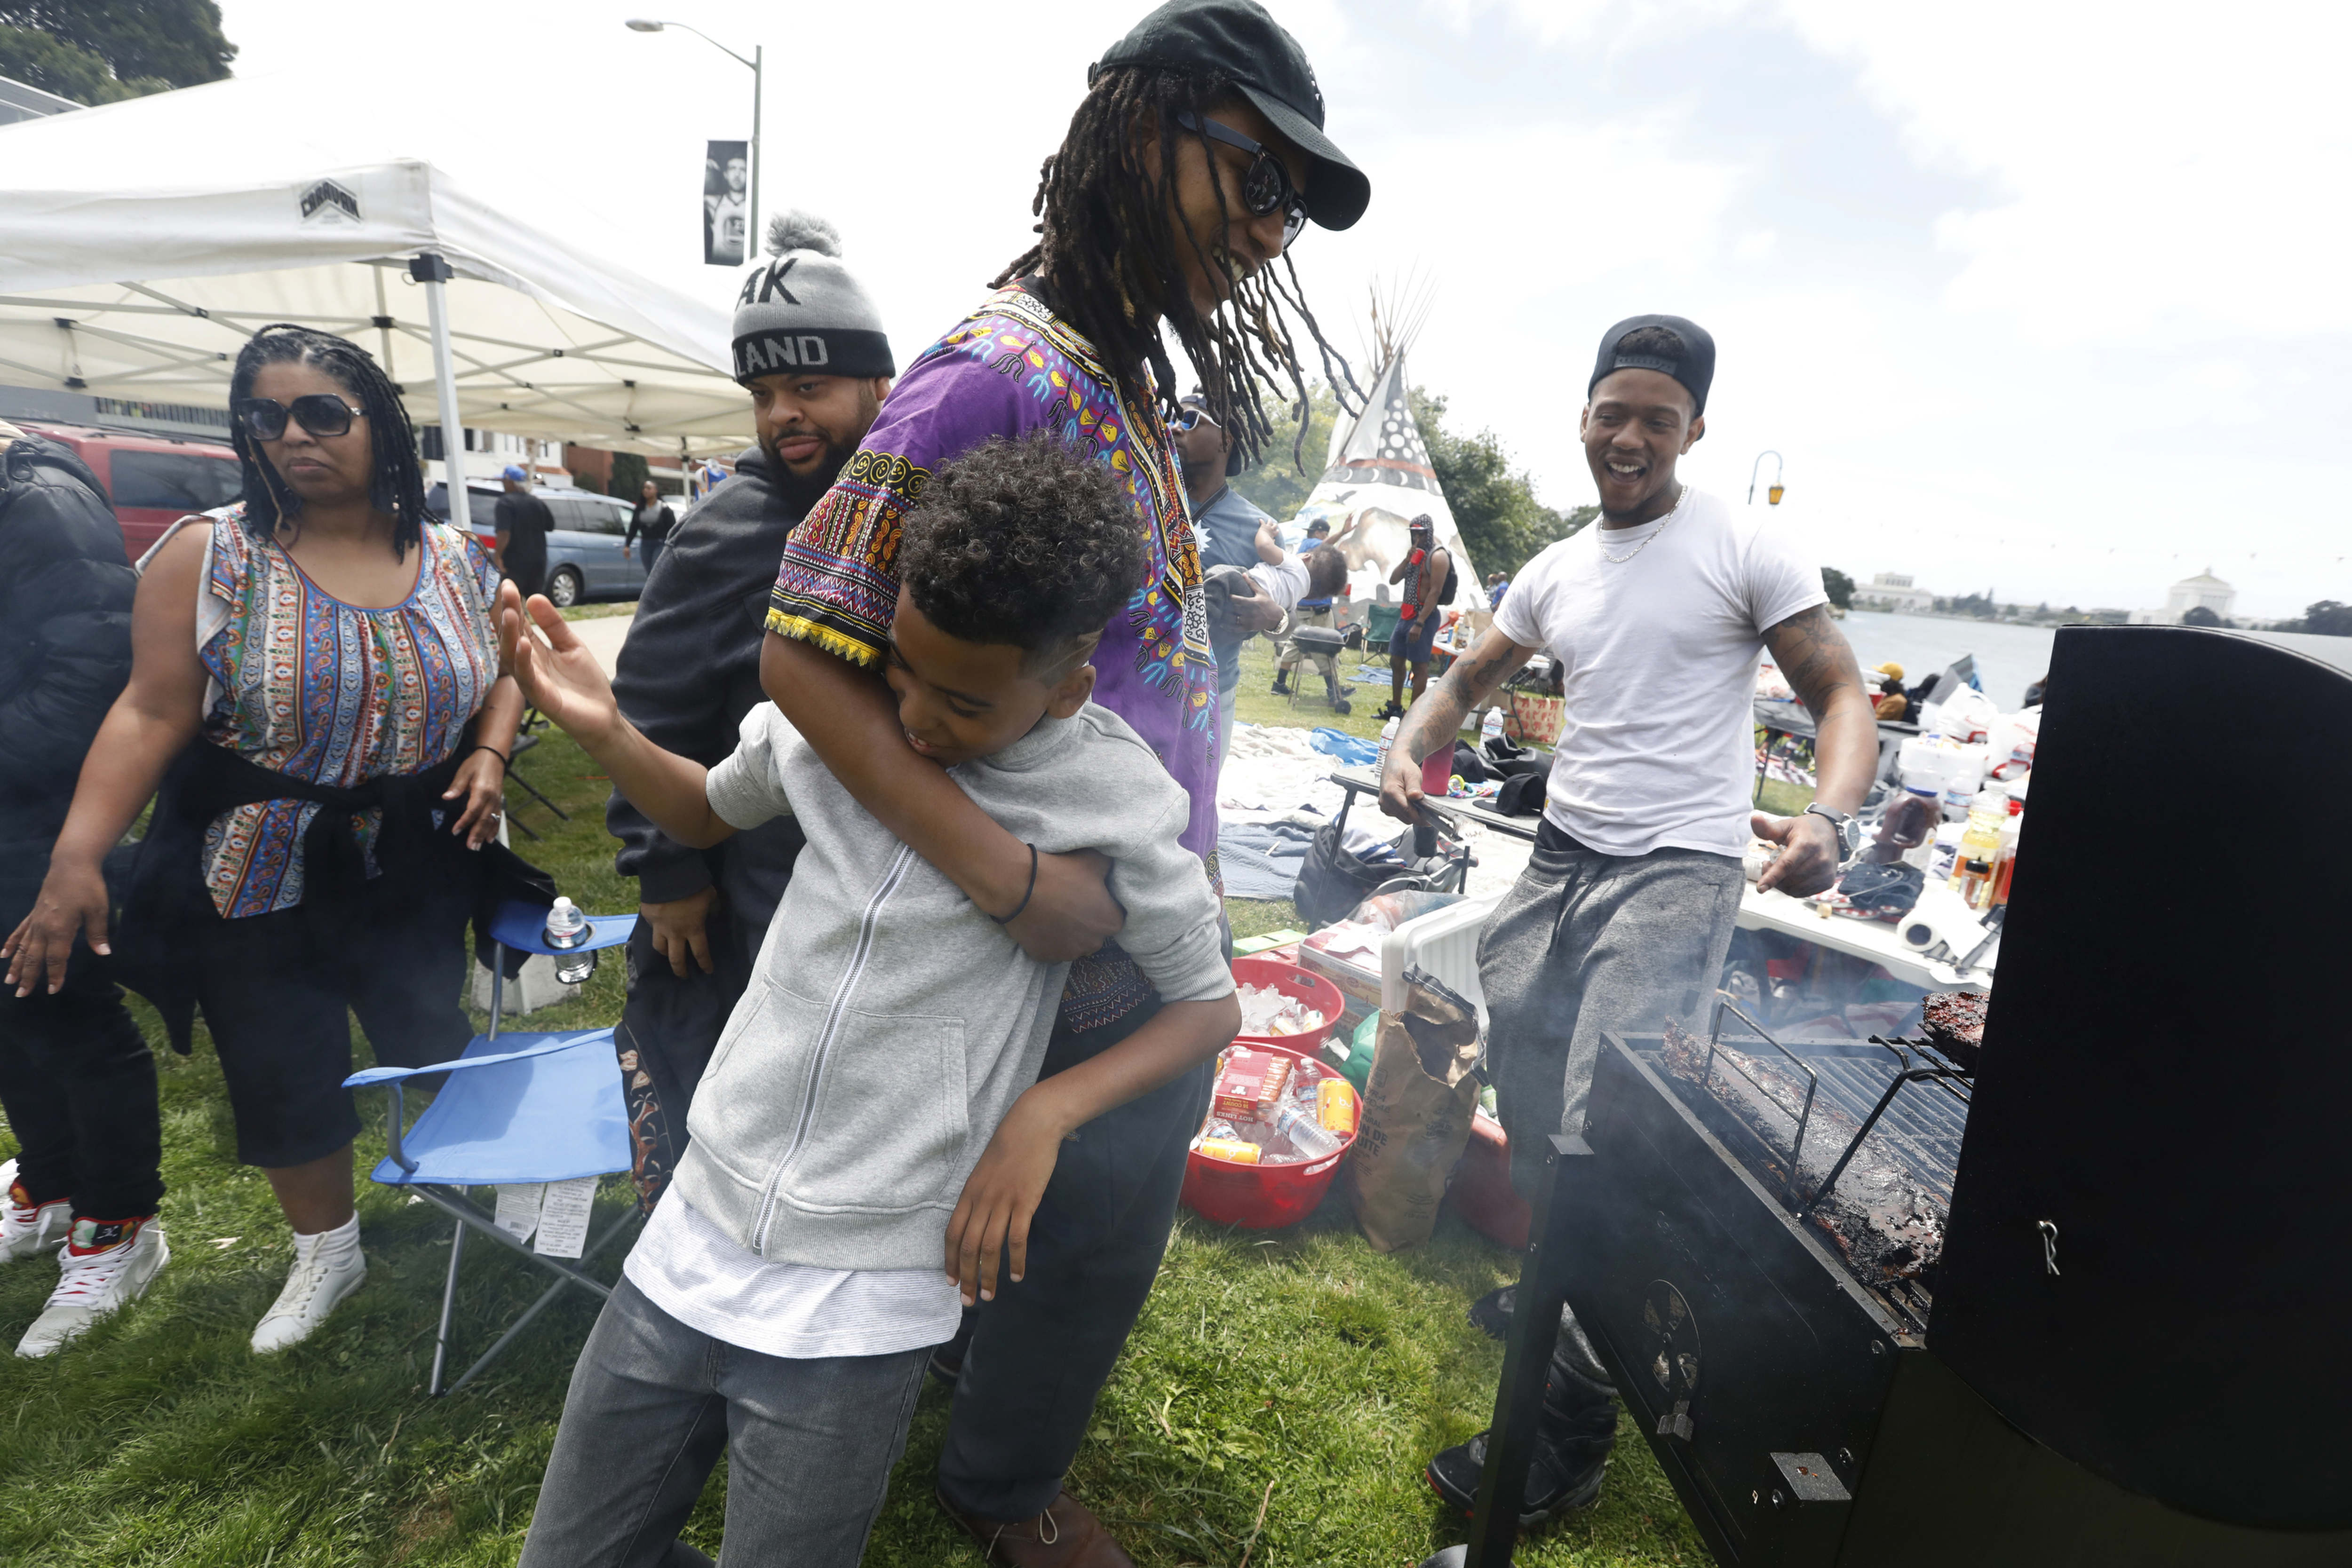 BBQ-ing while Black in Oakland